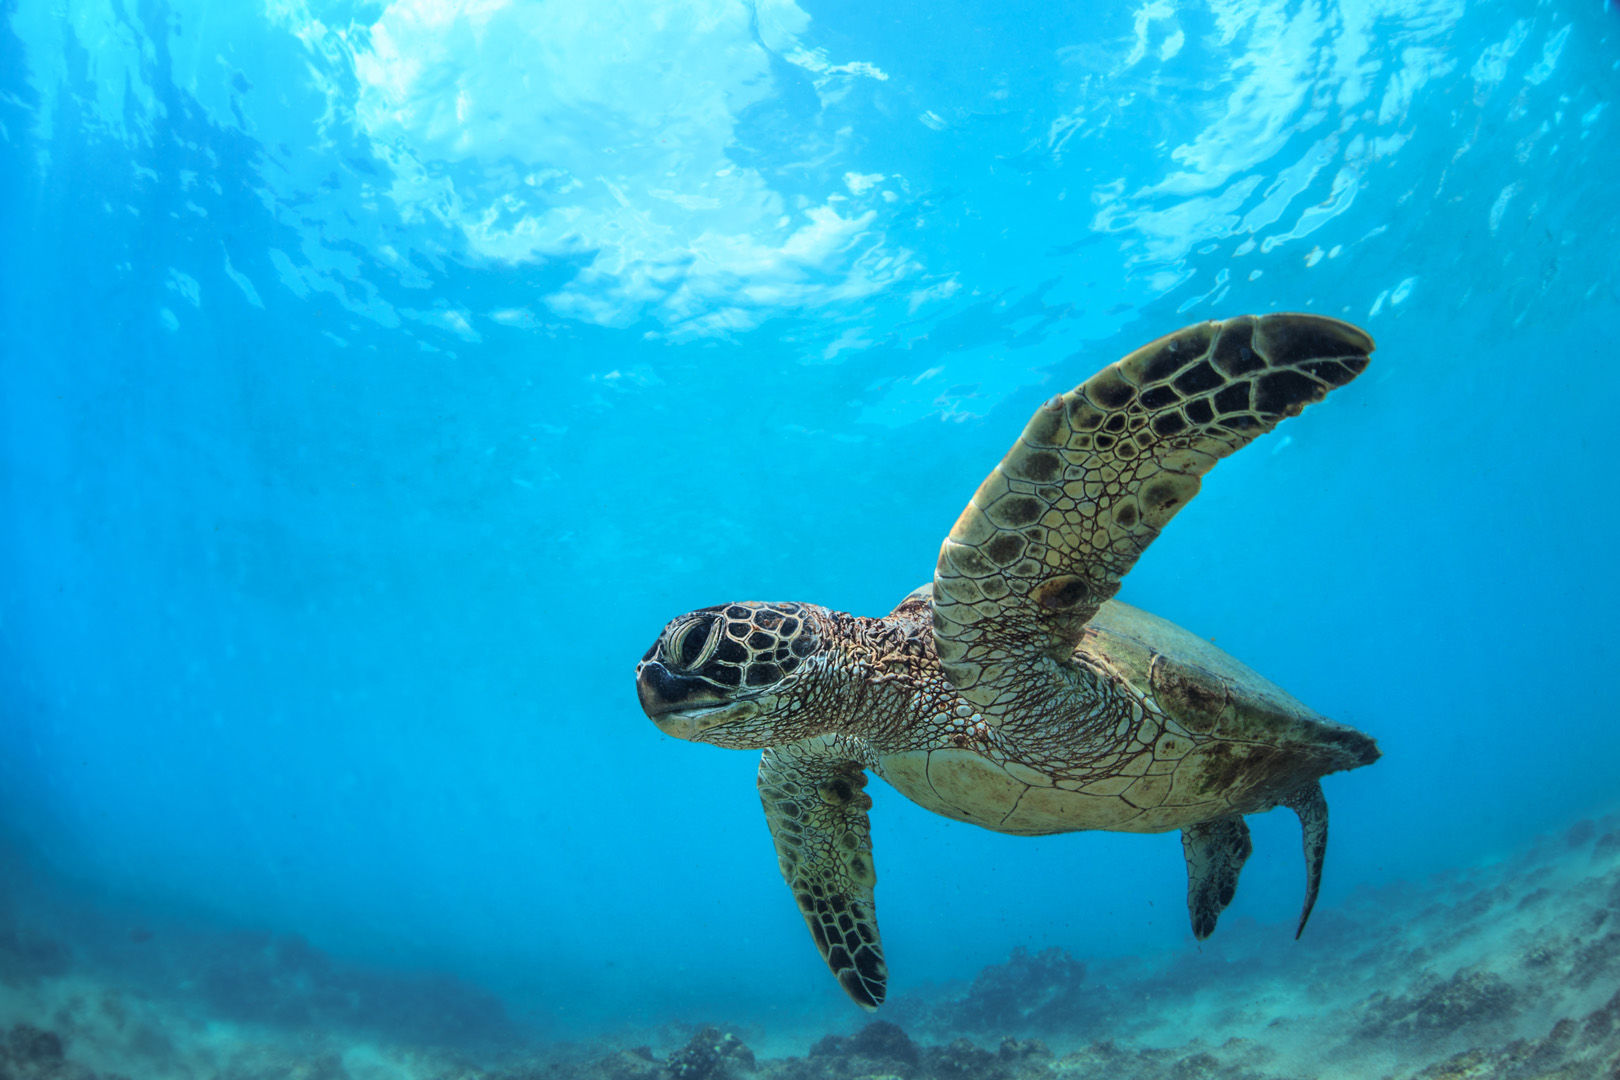 Hawaii is America's own Pacific paradise where divers have ample opportunities to see many favorites such as manta rays and spinner dolphins to friendly sea turtles at sites close to shore